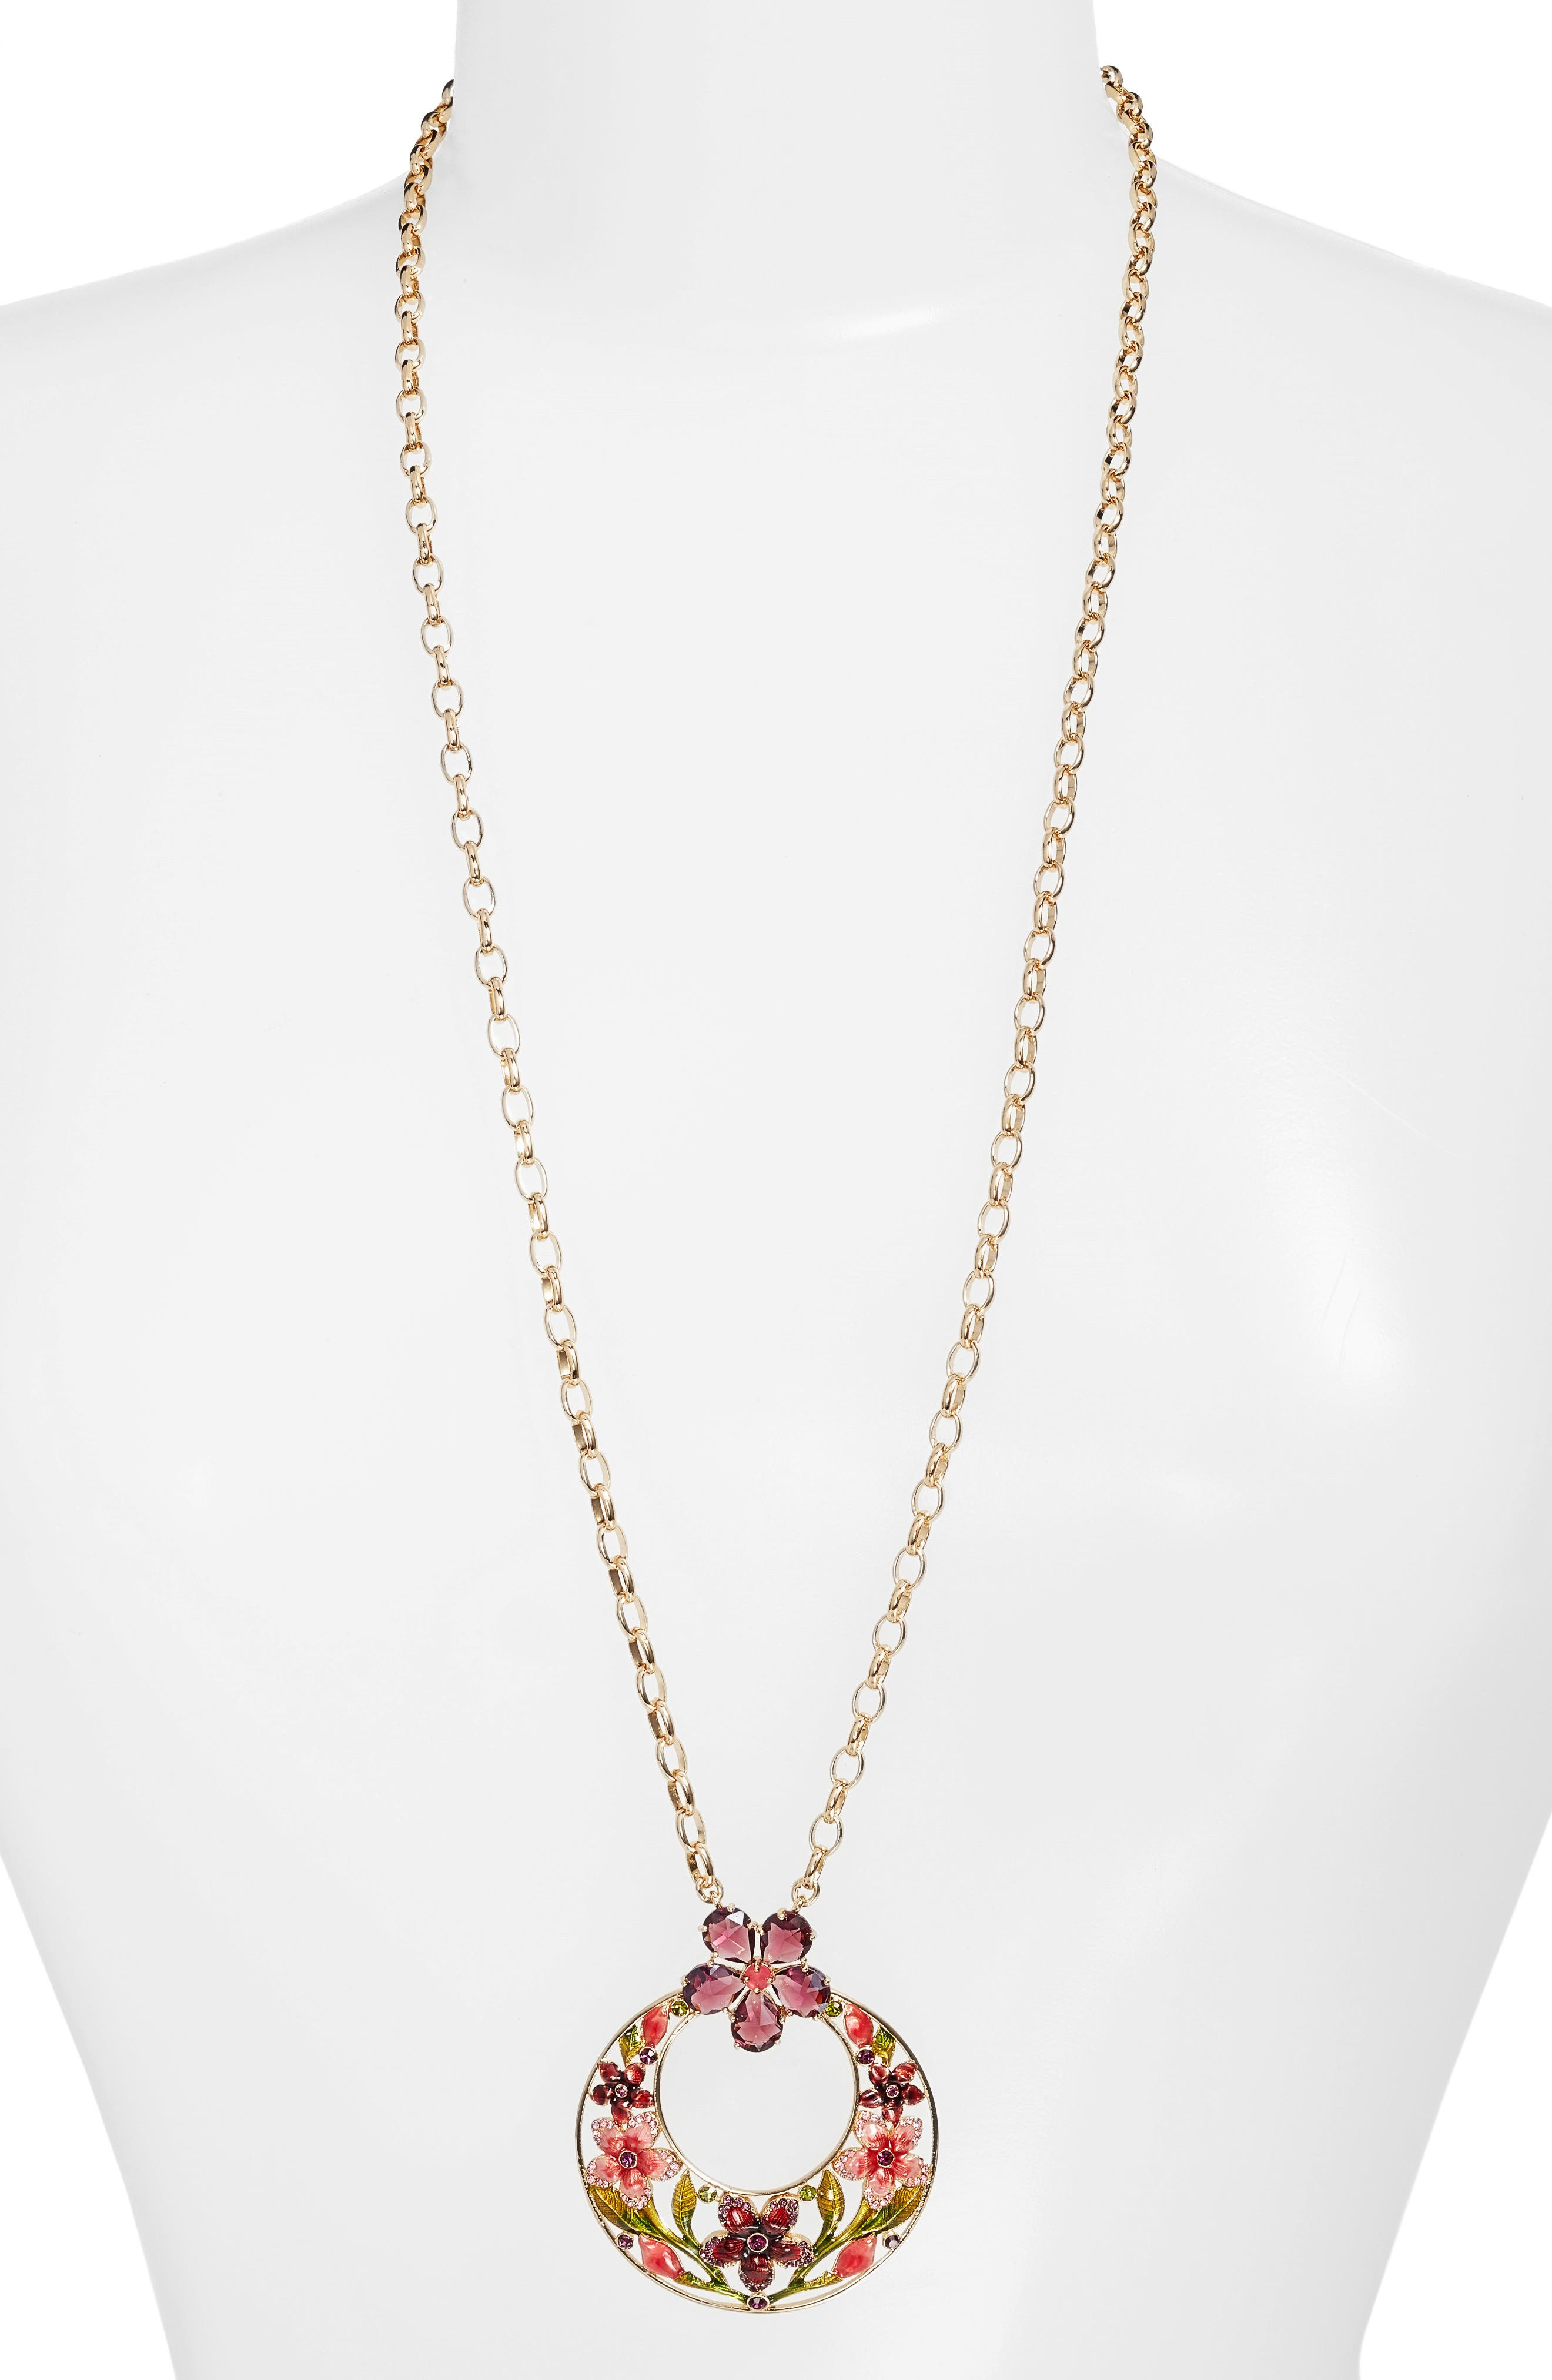 kate spade new york in full bloom pendant necklace